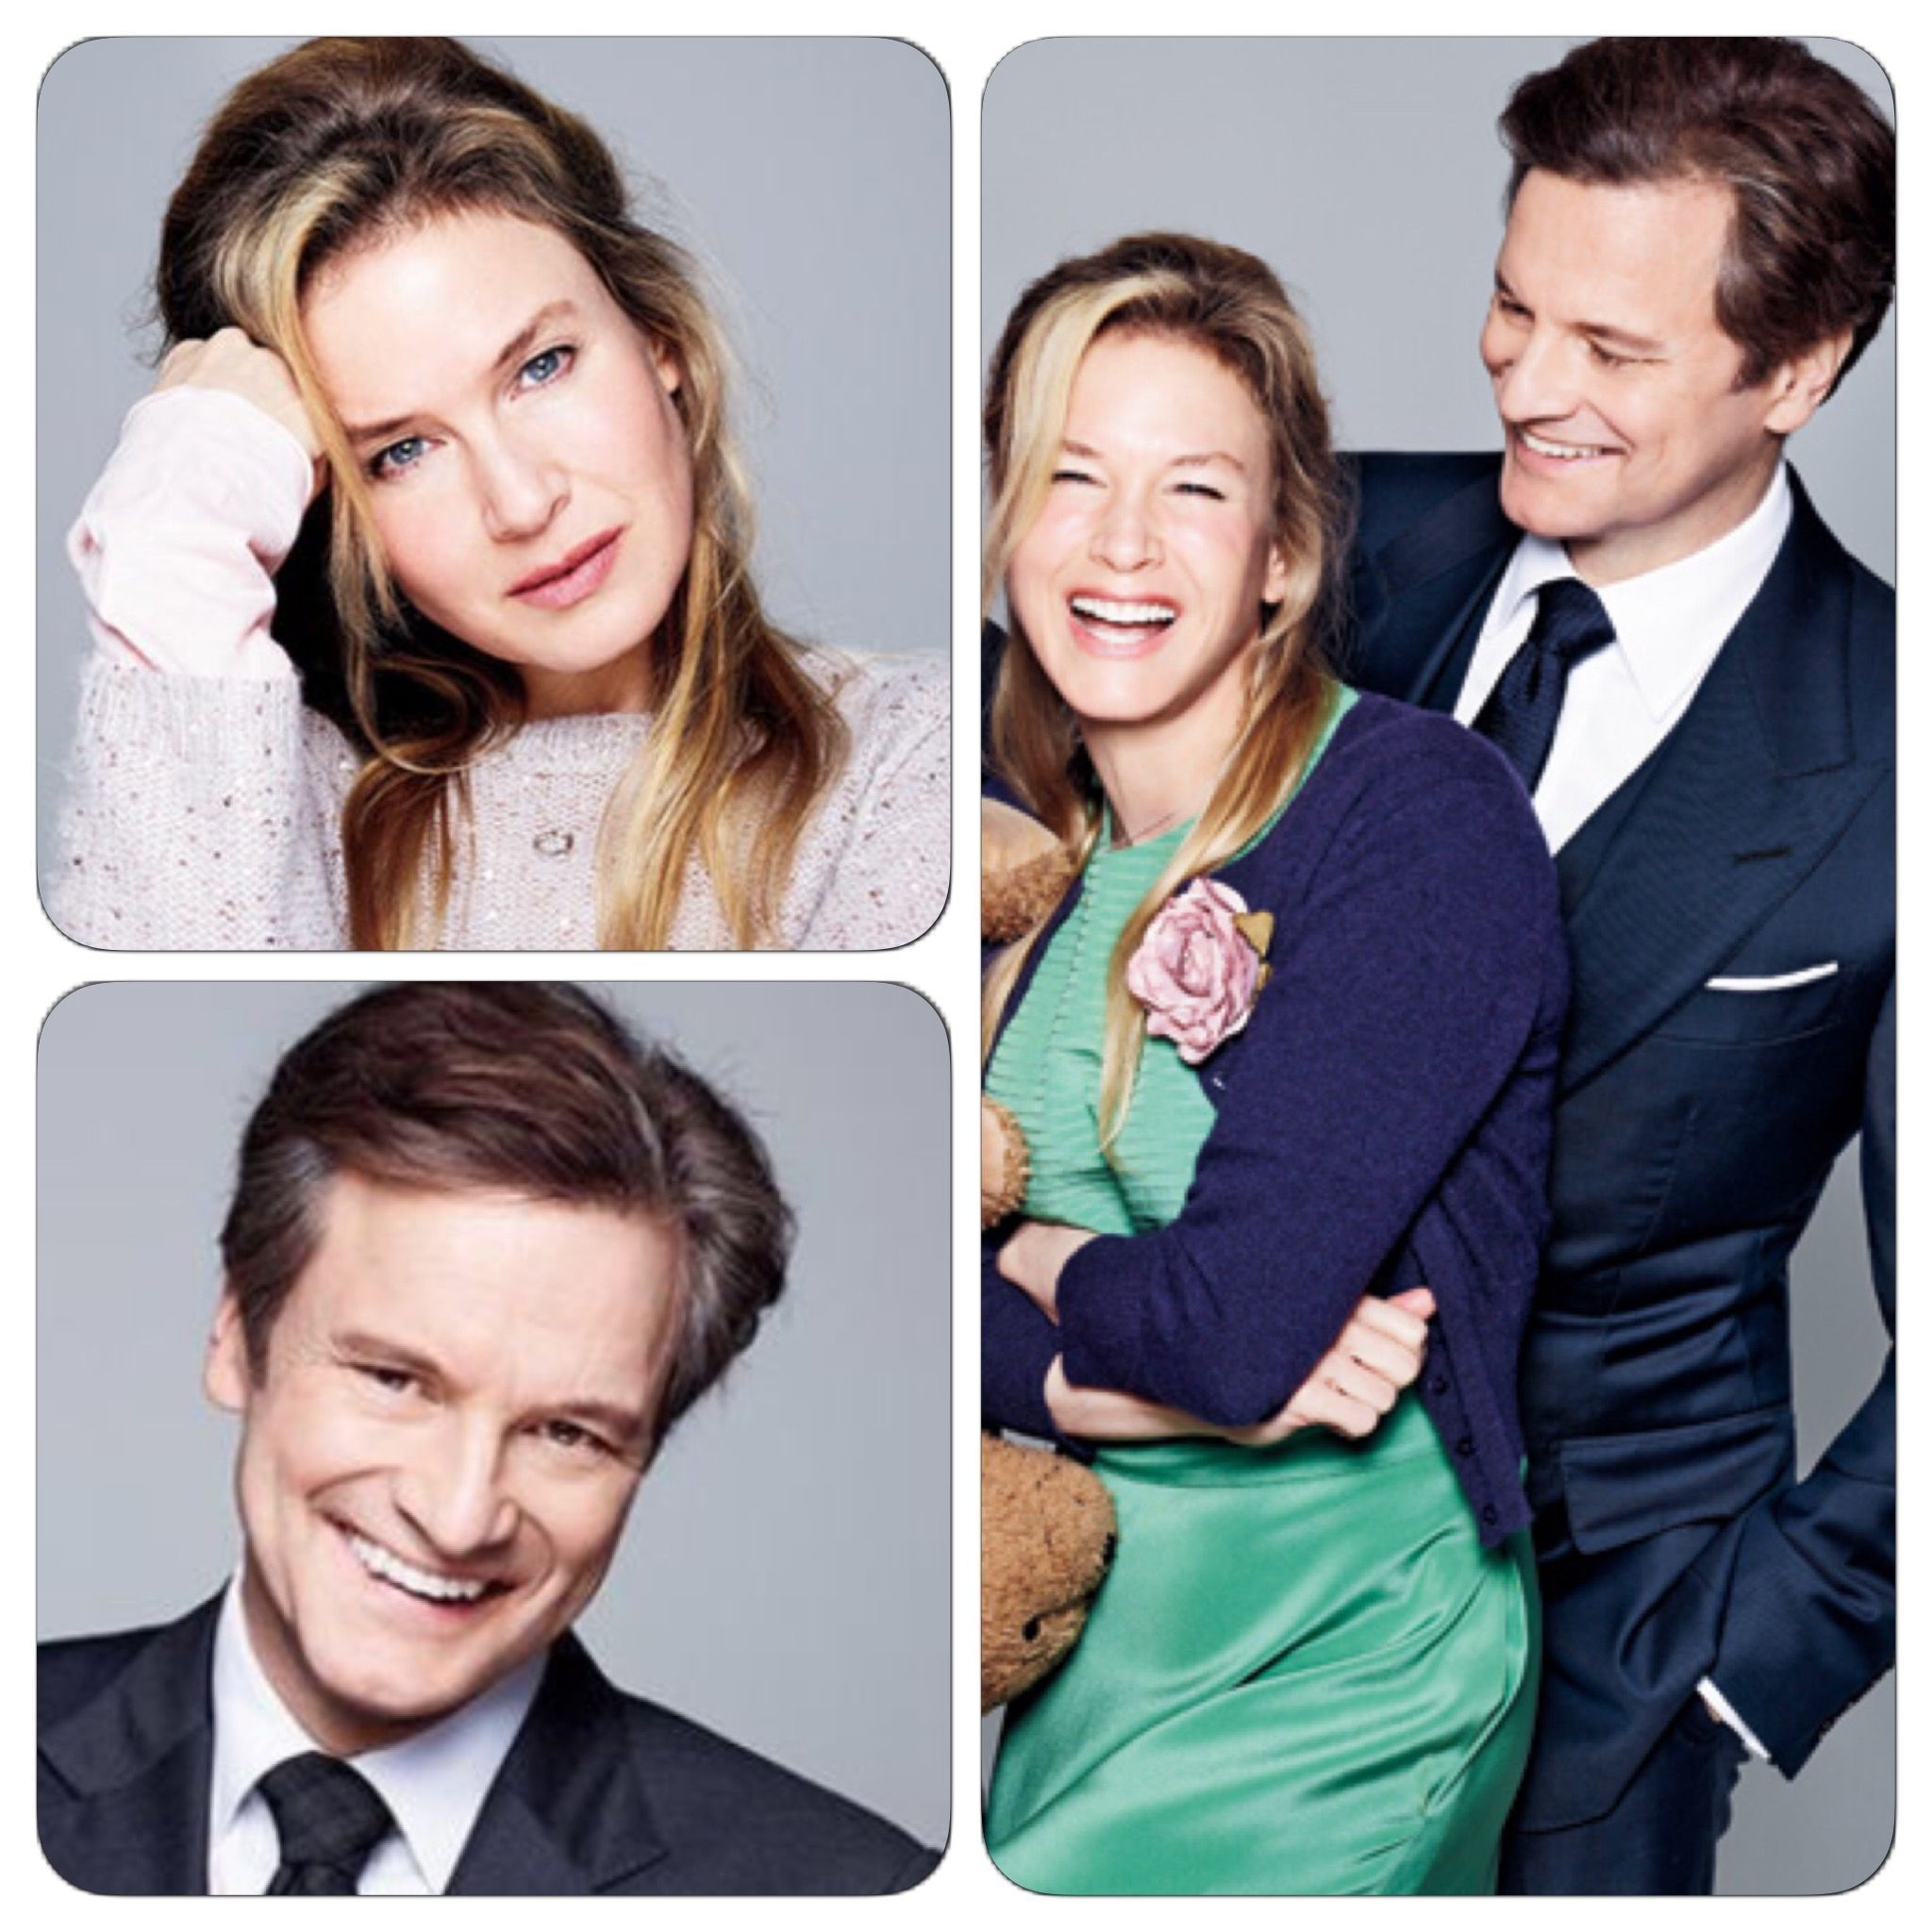 Mark & Bridget #bridgetjonesdiaryandbaby Mark & Bridget #bridgetjonesdiaryandbaby Mark & Bridget #bridgetjonesdiaryandbaby Mark & Bridget #bridgetjonesdiaryandbaby Mark & Bridget #bridgetjonesdiaryandbaby Mark & Bridget #bridgetjonesdiaryandbaby Mark & Bridget #bridgetjonesdiaryandbaby Mark & Bridget #bridgetjonesdiaryandbaby